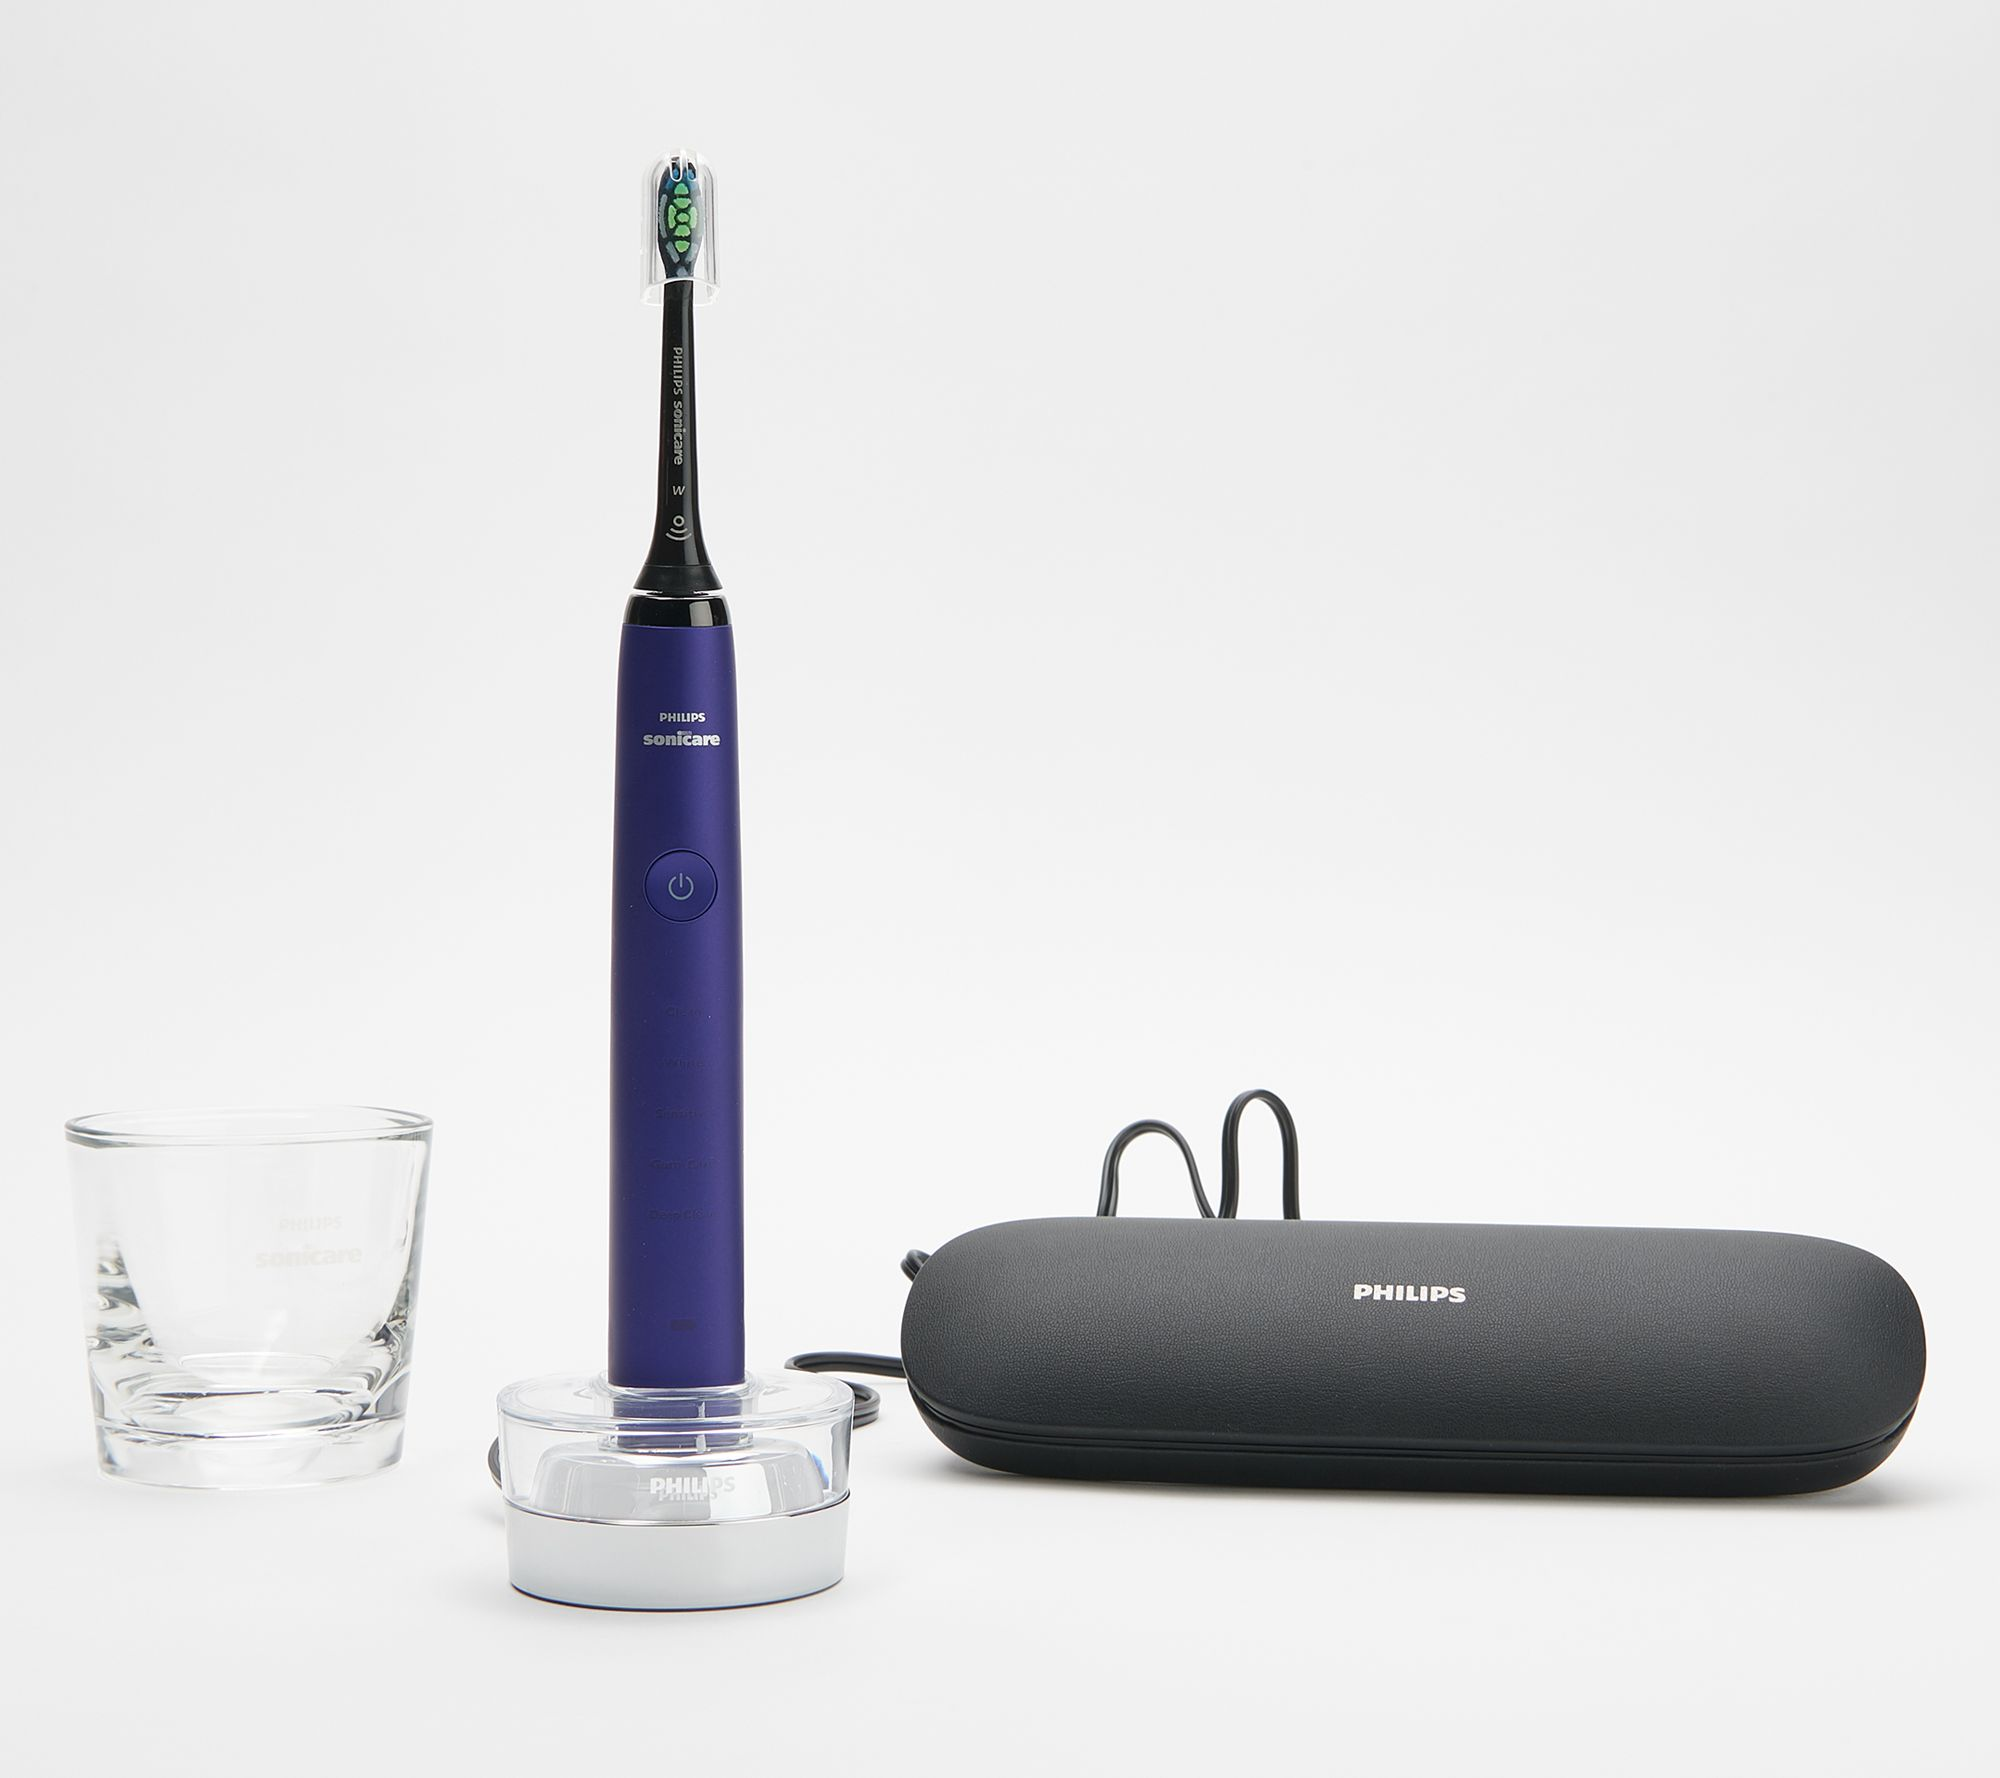 Save on your next dentist visit by using Sonicare